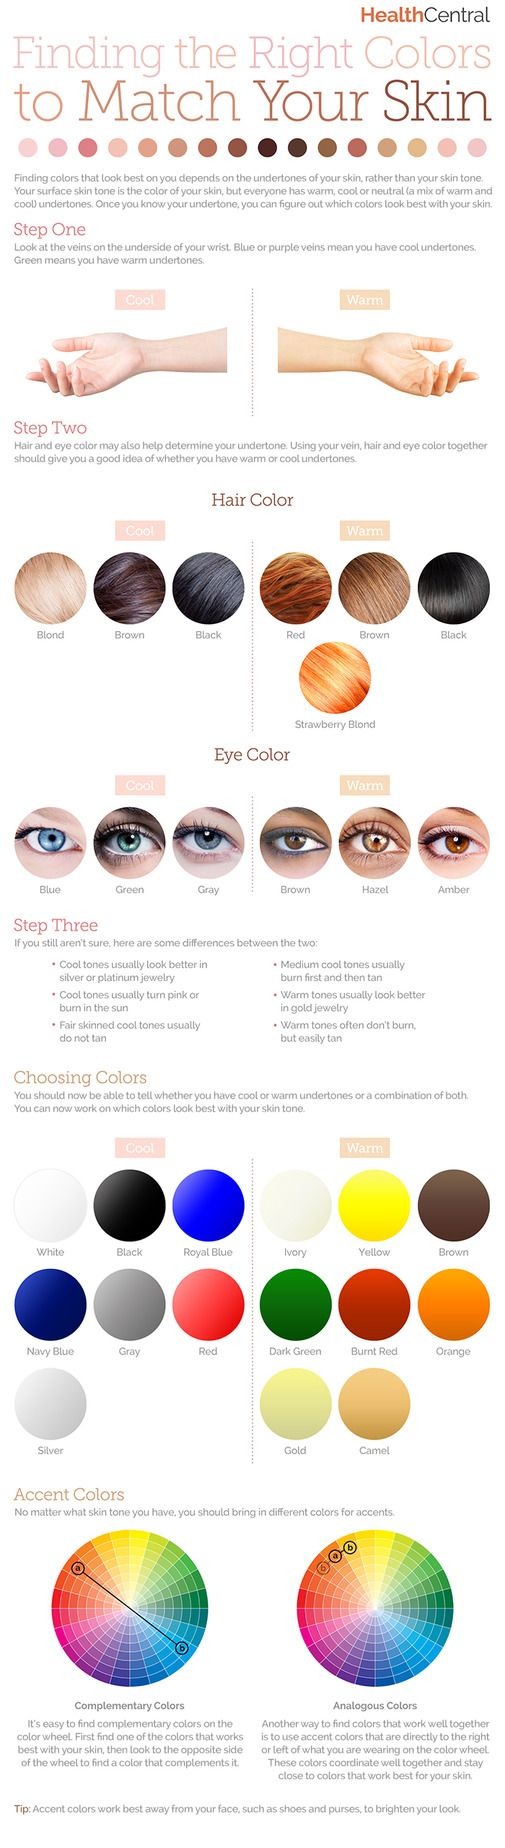 How to find the right colors to match your skin infographic